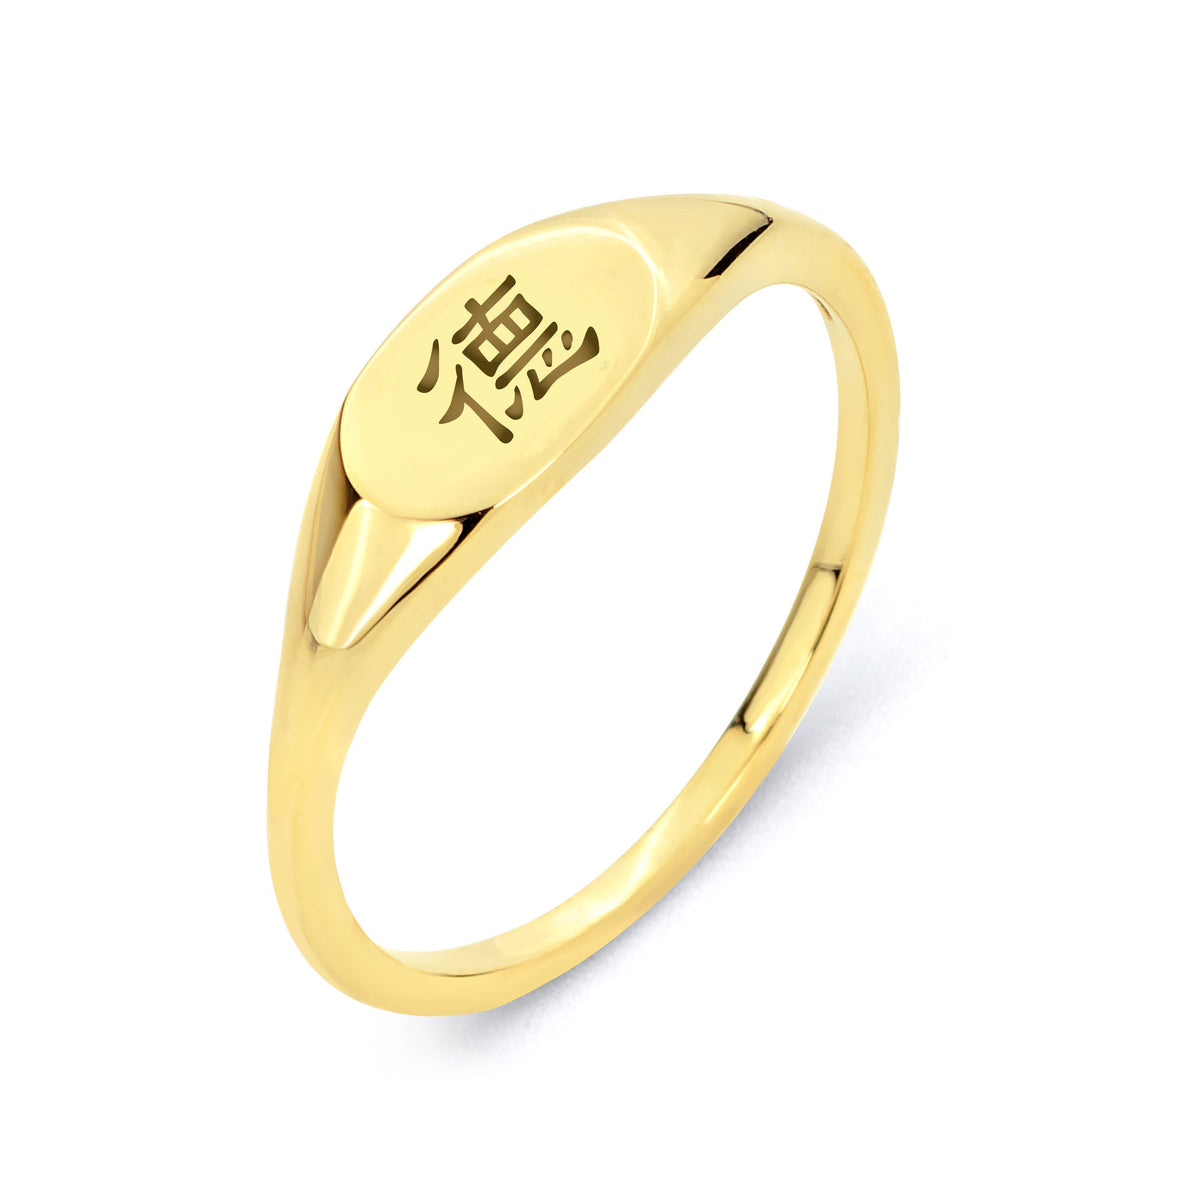 10k Gold Kanji Signet Ring Symbolizing Virtue, De, The Symbol of Virtue and Morality